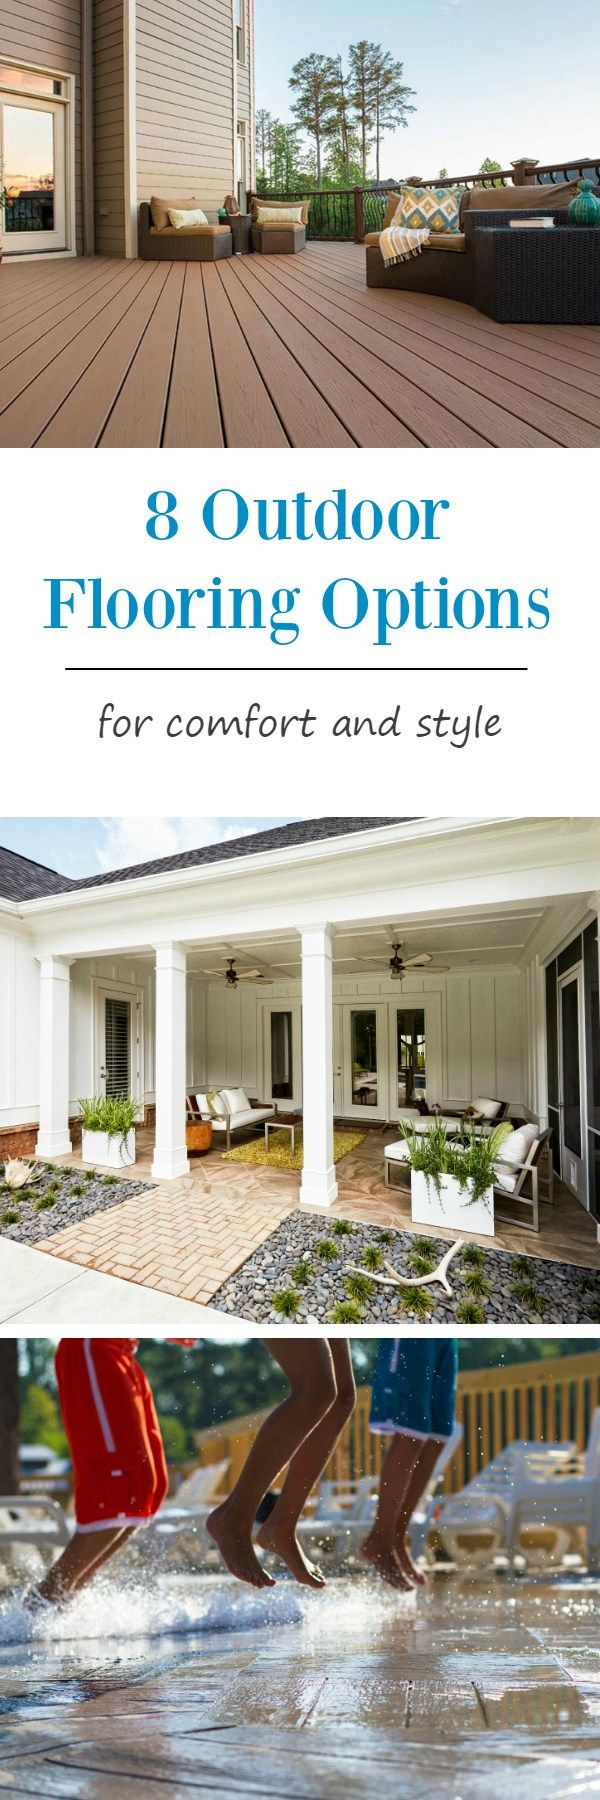 Deck amp patio furniture are often neglected when hiring a pressure - 8 Outdoor Flooring Options For Style Comfort